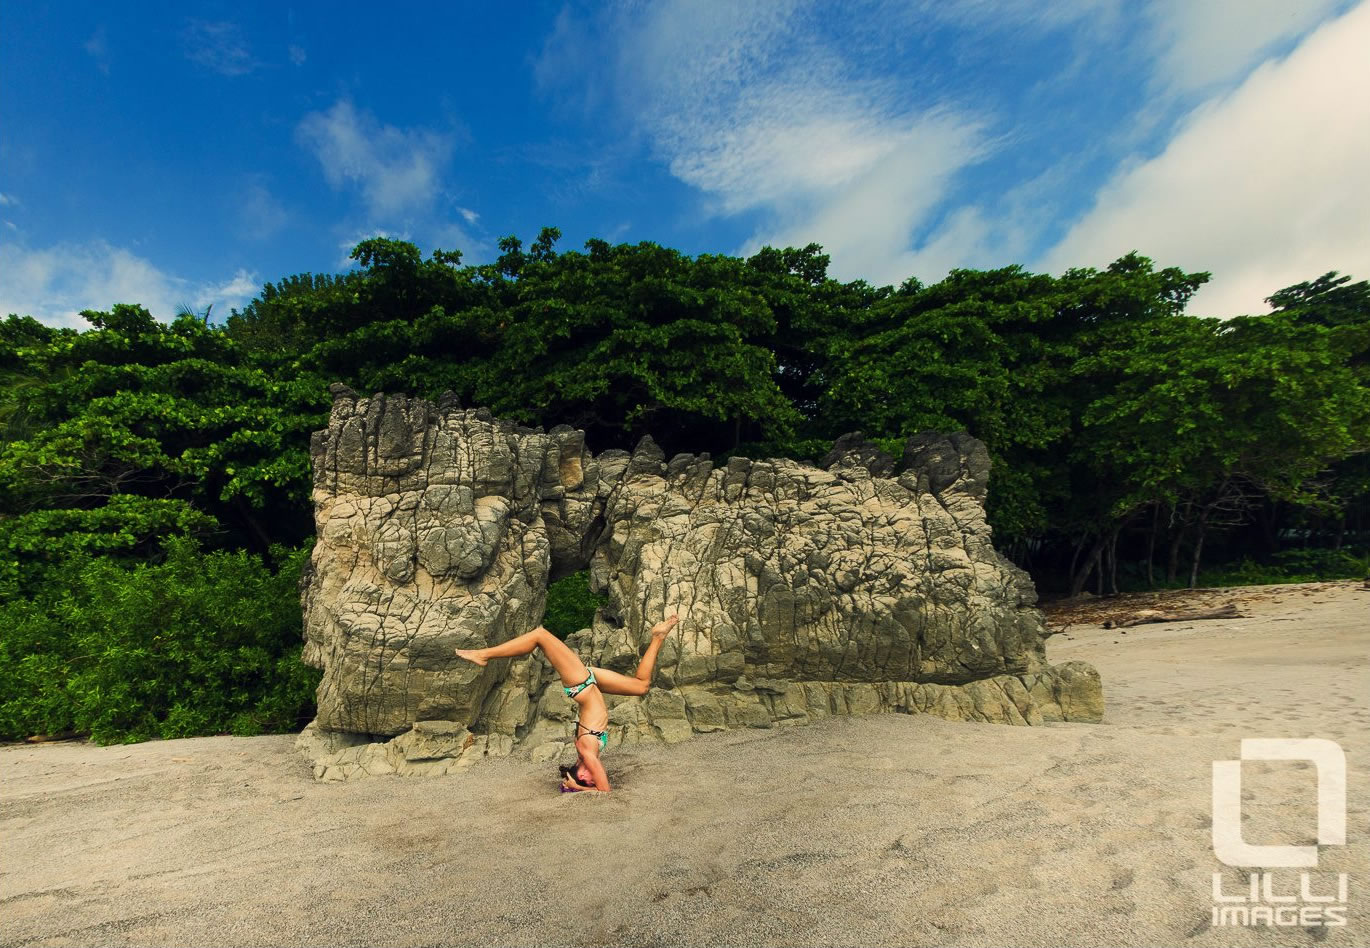 Perhaps the best yoga studio of all is Costa Rica itself